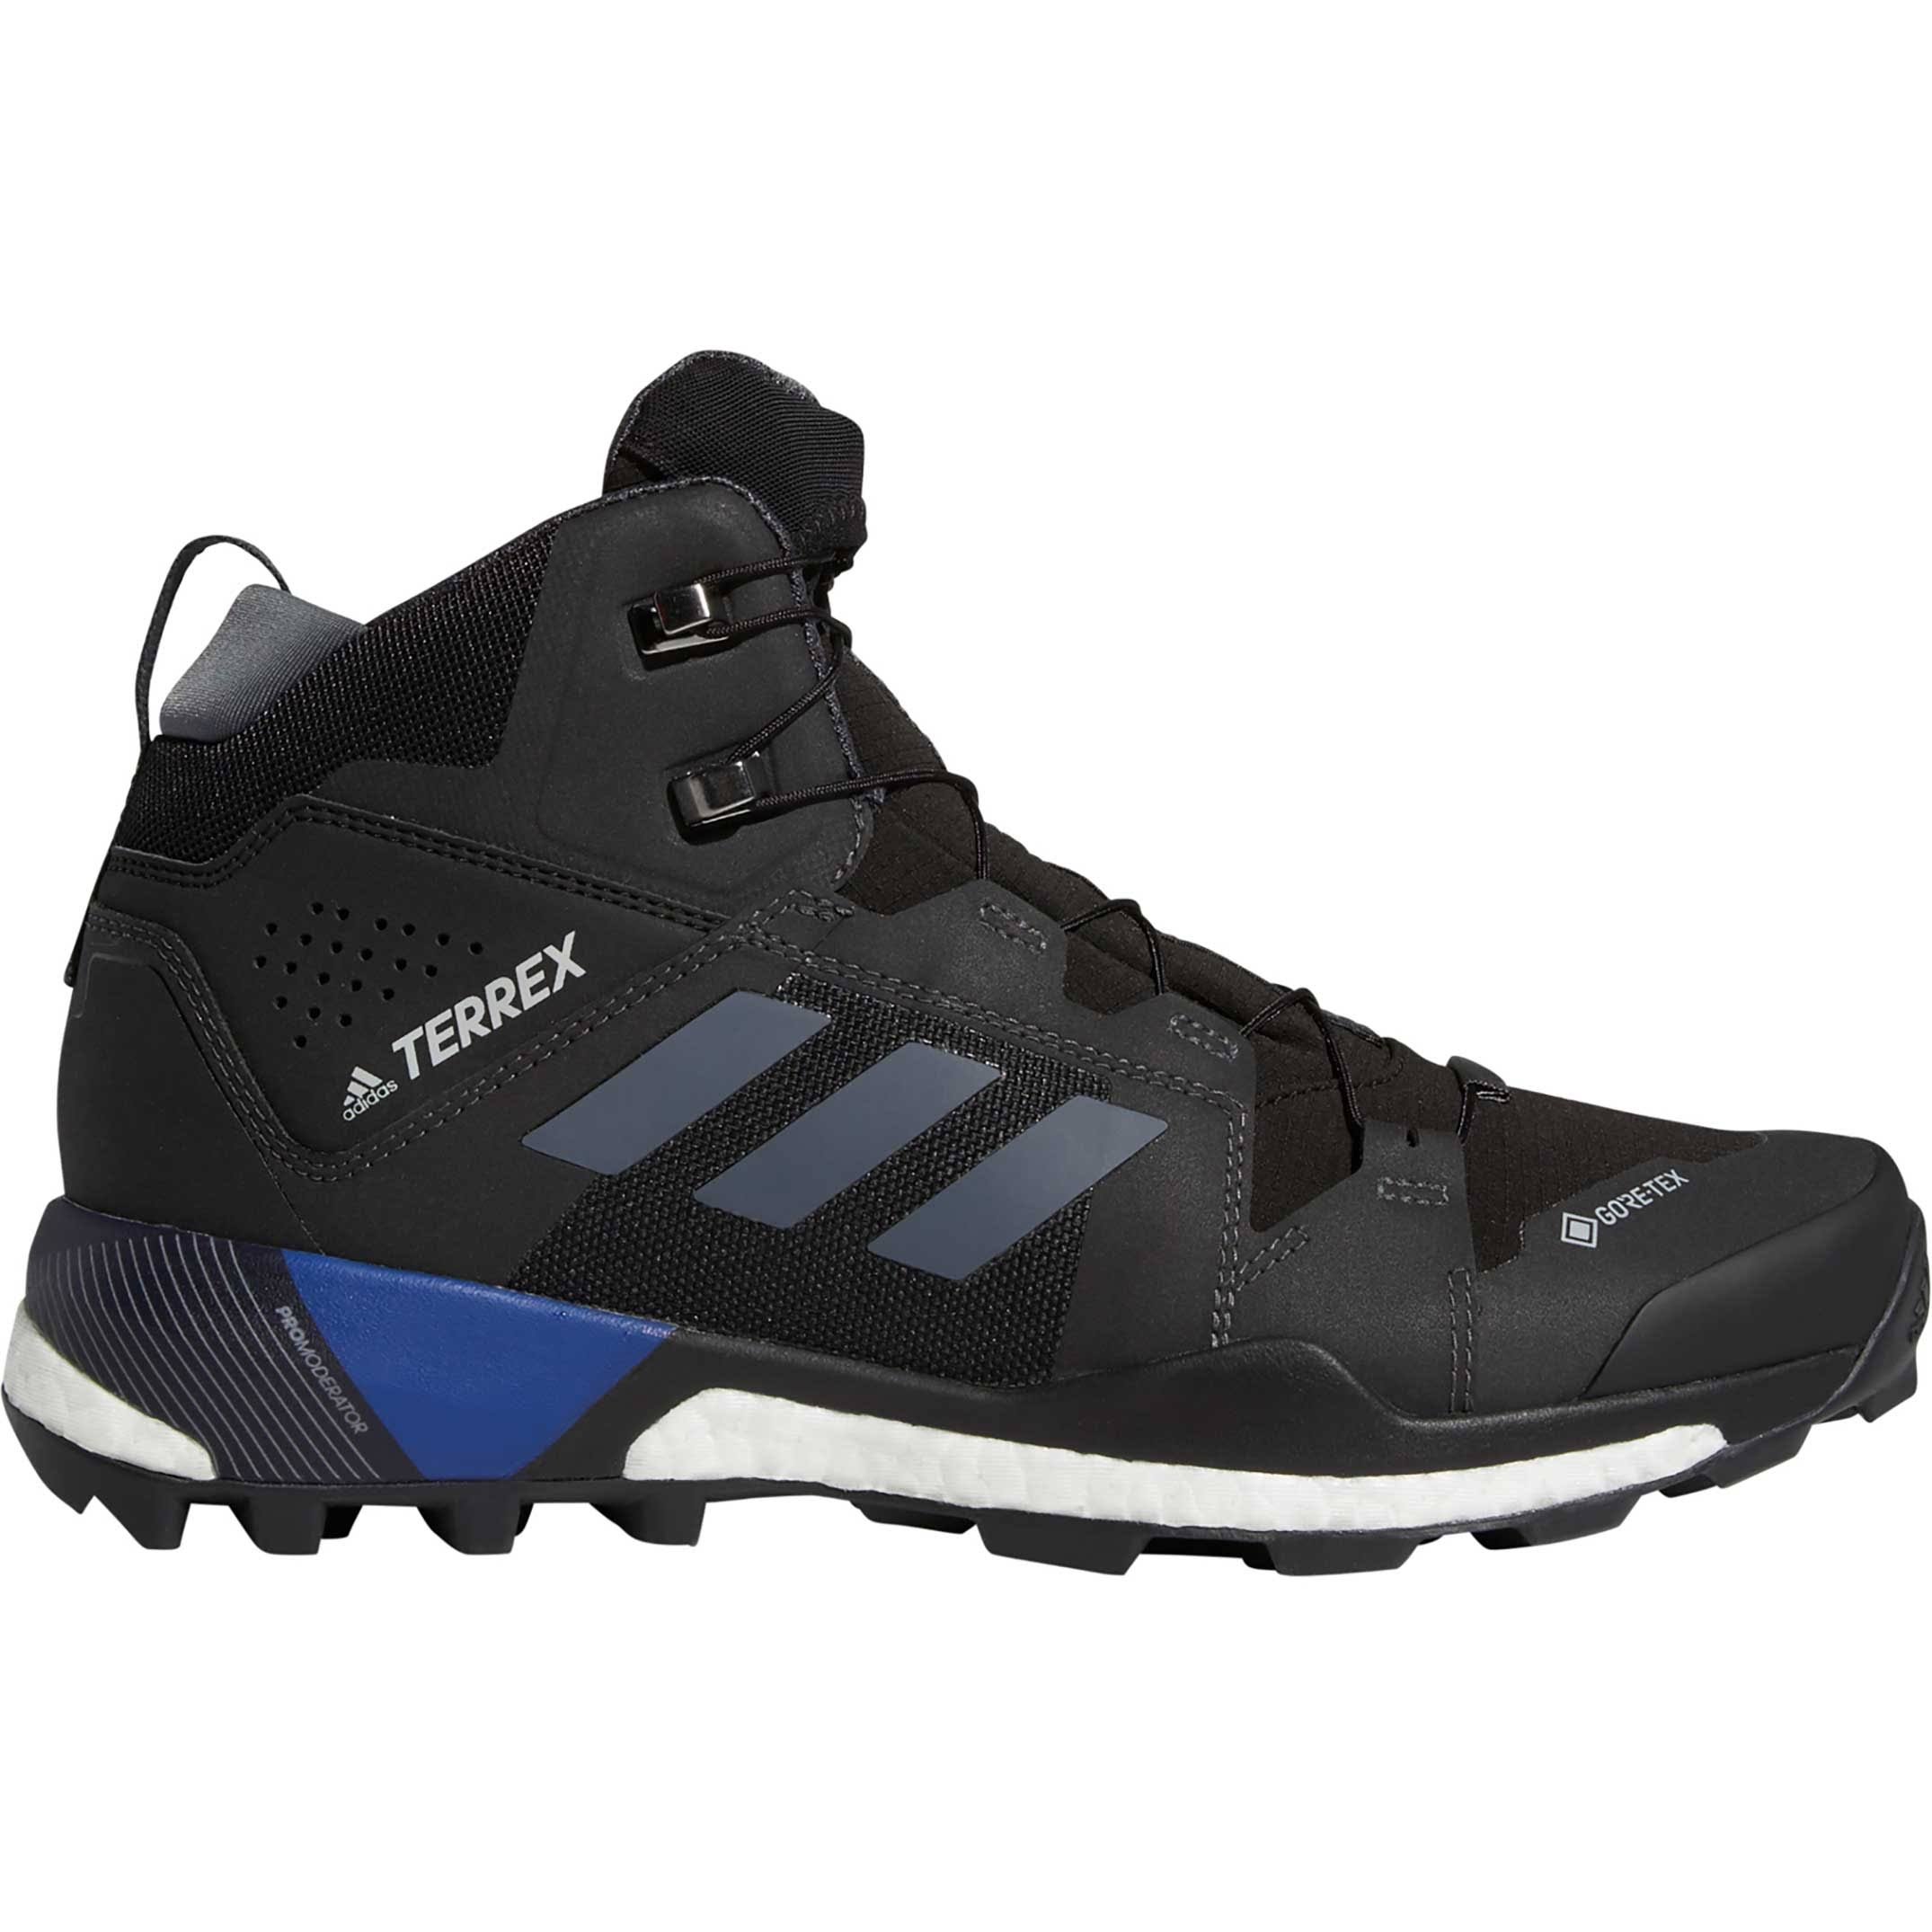 Adidas Terrex Skychaser XT Mid Gore-Tex Shoes Hiking - Black